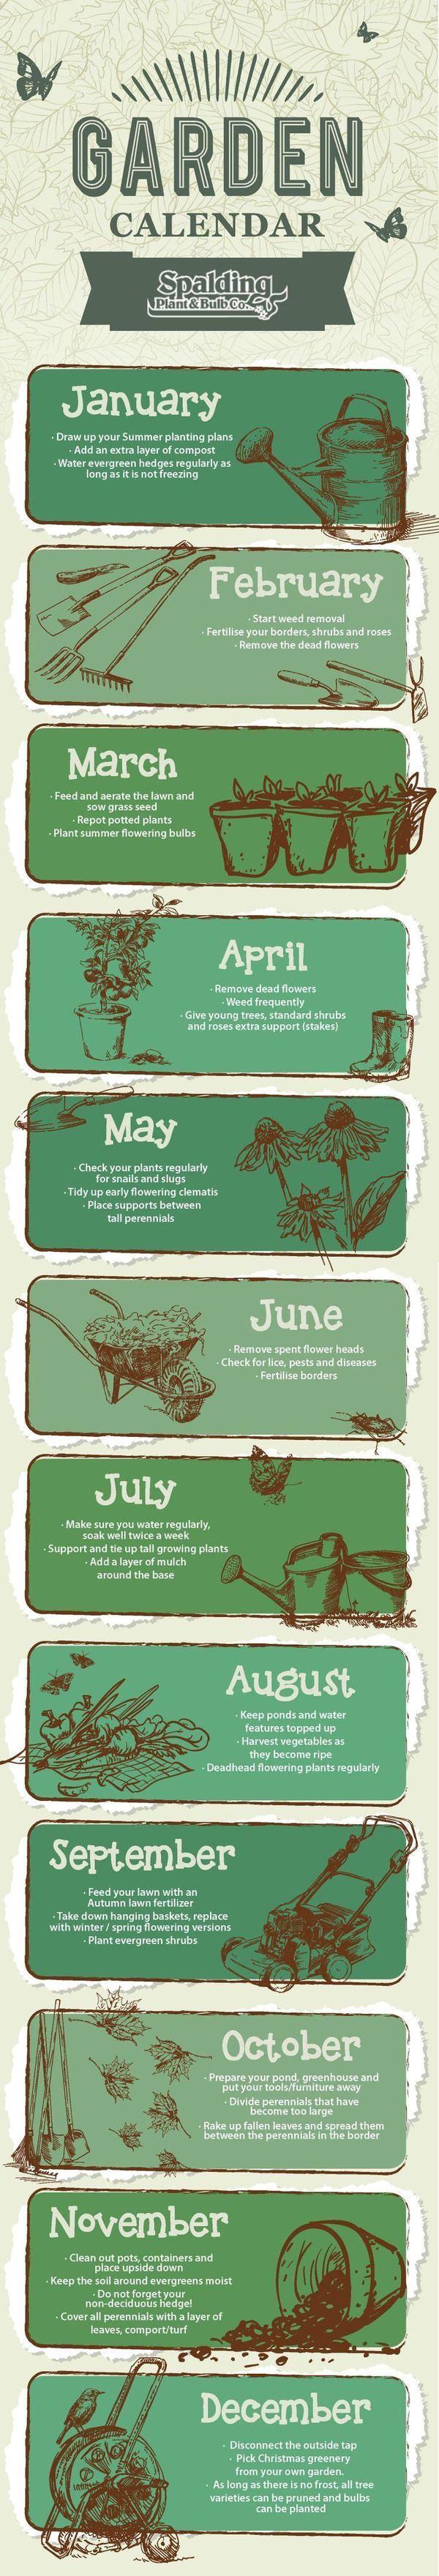 Calendar For A Perfect Garden All Year Round.